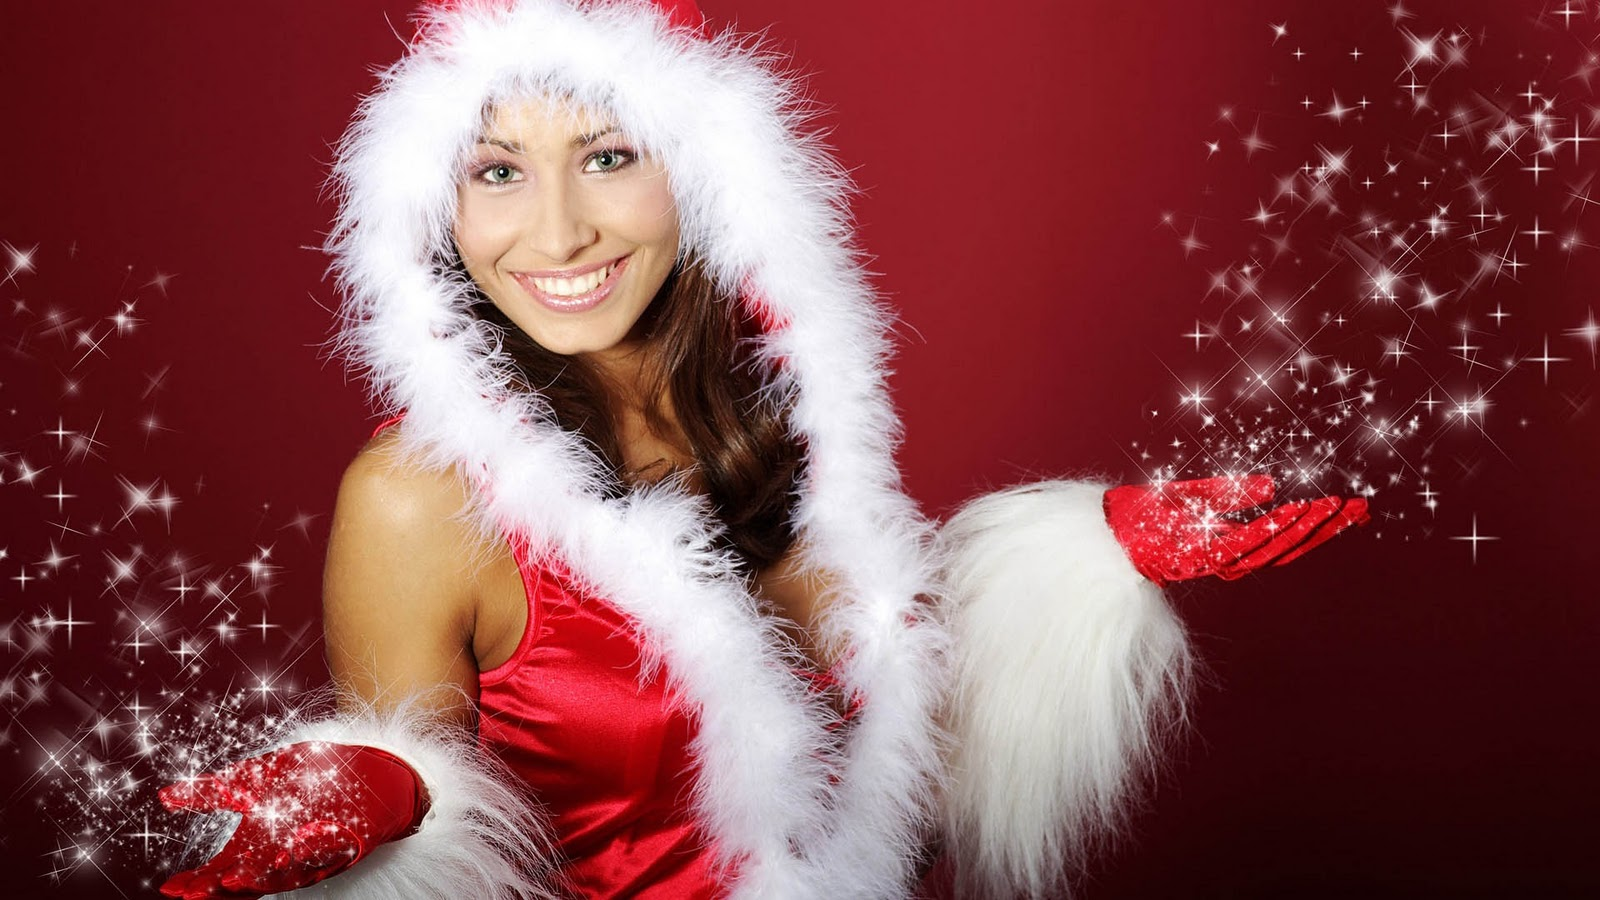 from Issac hot santa claus girls